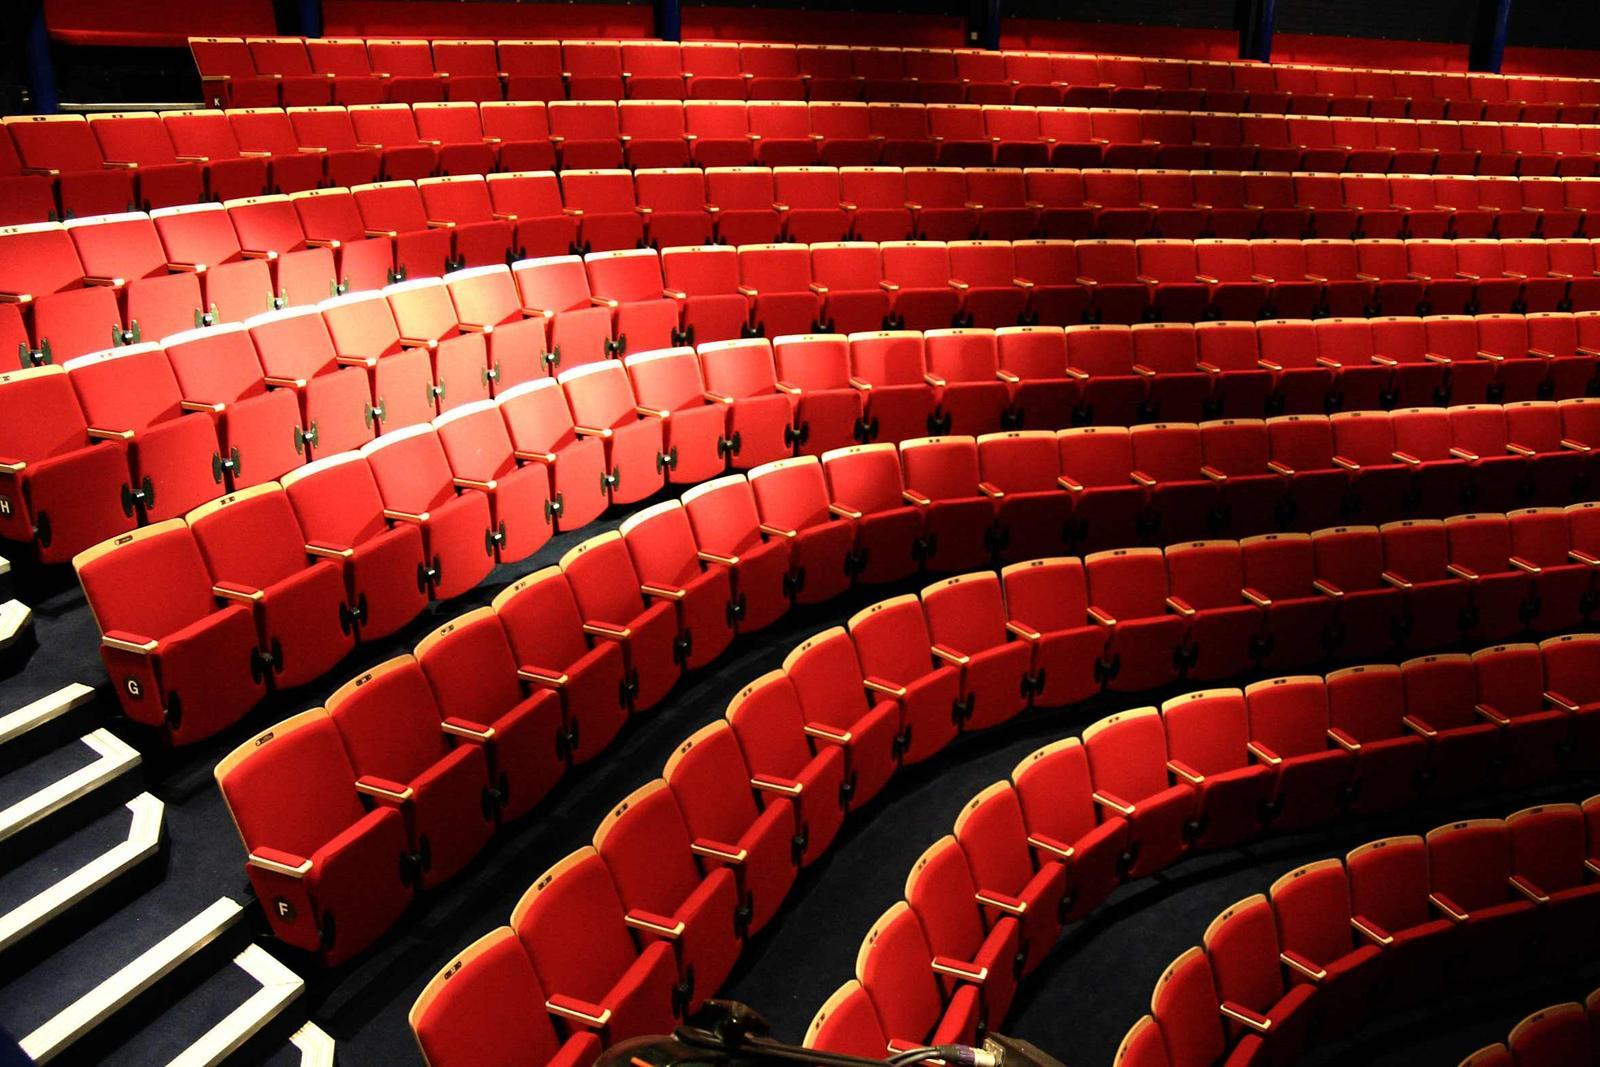 theater chairs best buy wheelchair to movie theatre for sale discount home seating furniture interior design scrap book